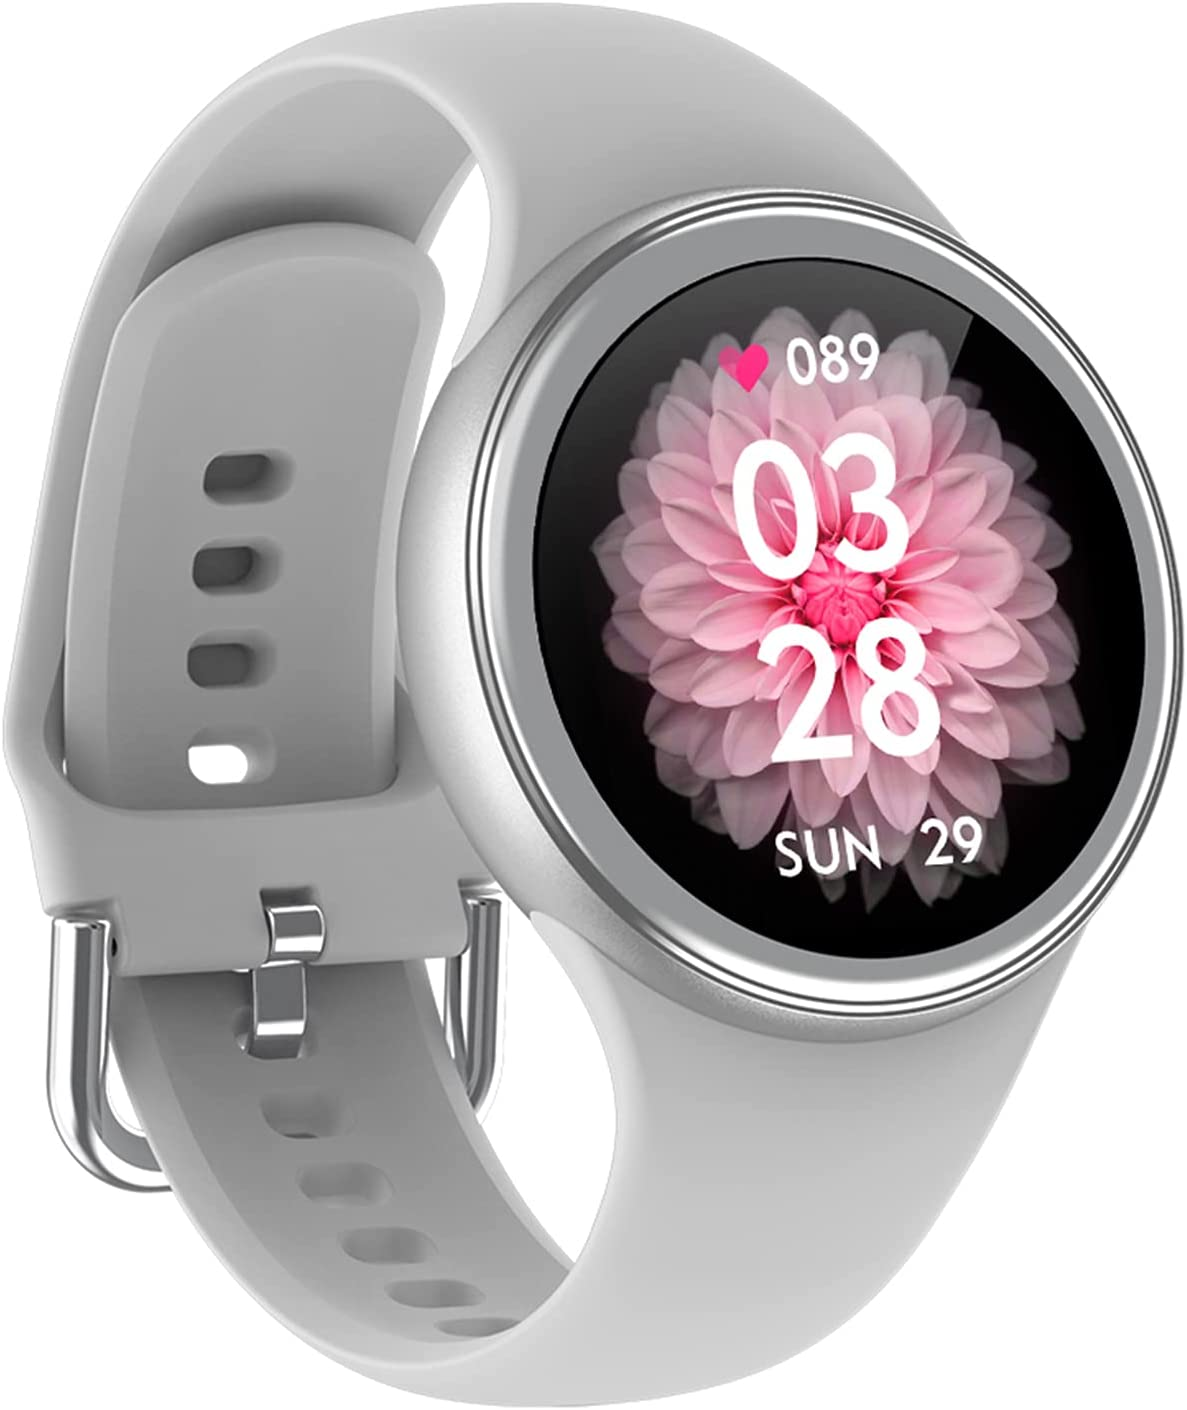 QFSLR Smartwatch Fitness Tracker with wi Blood Pressure lowest price Monitor Cheap super special price